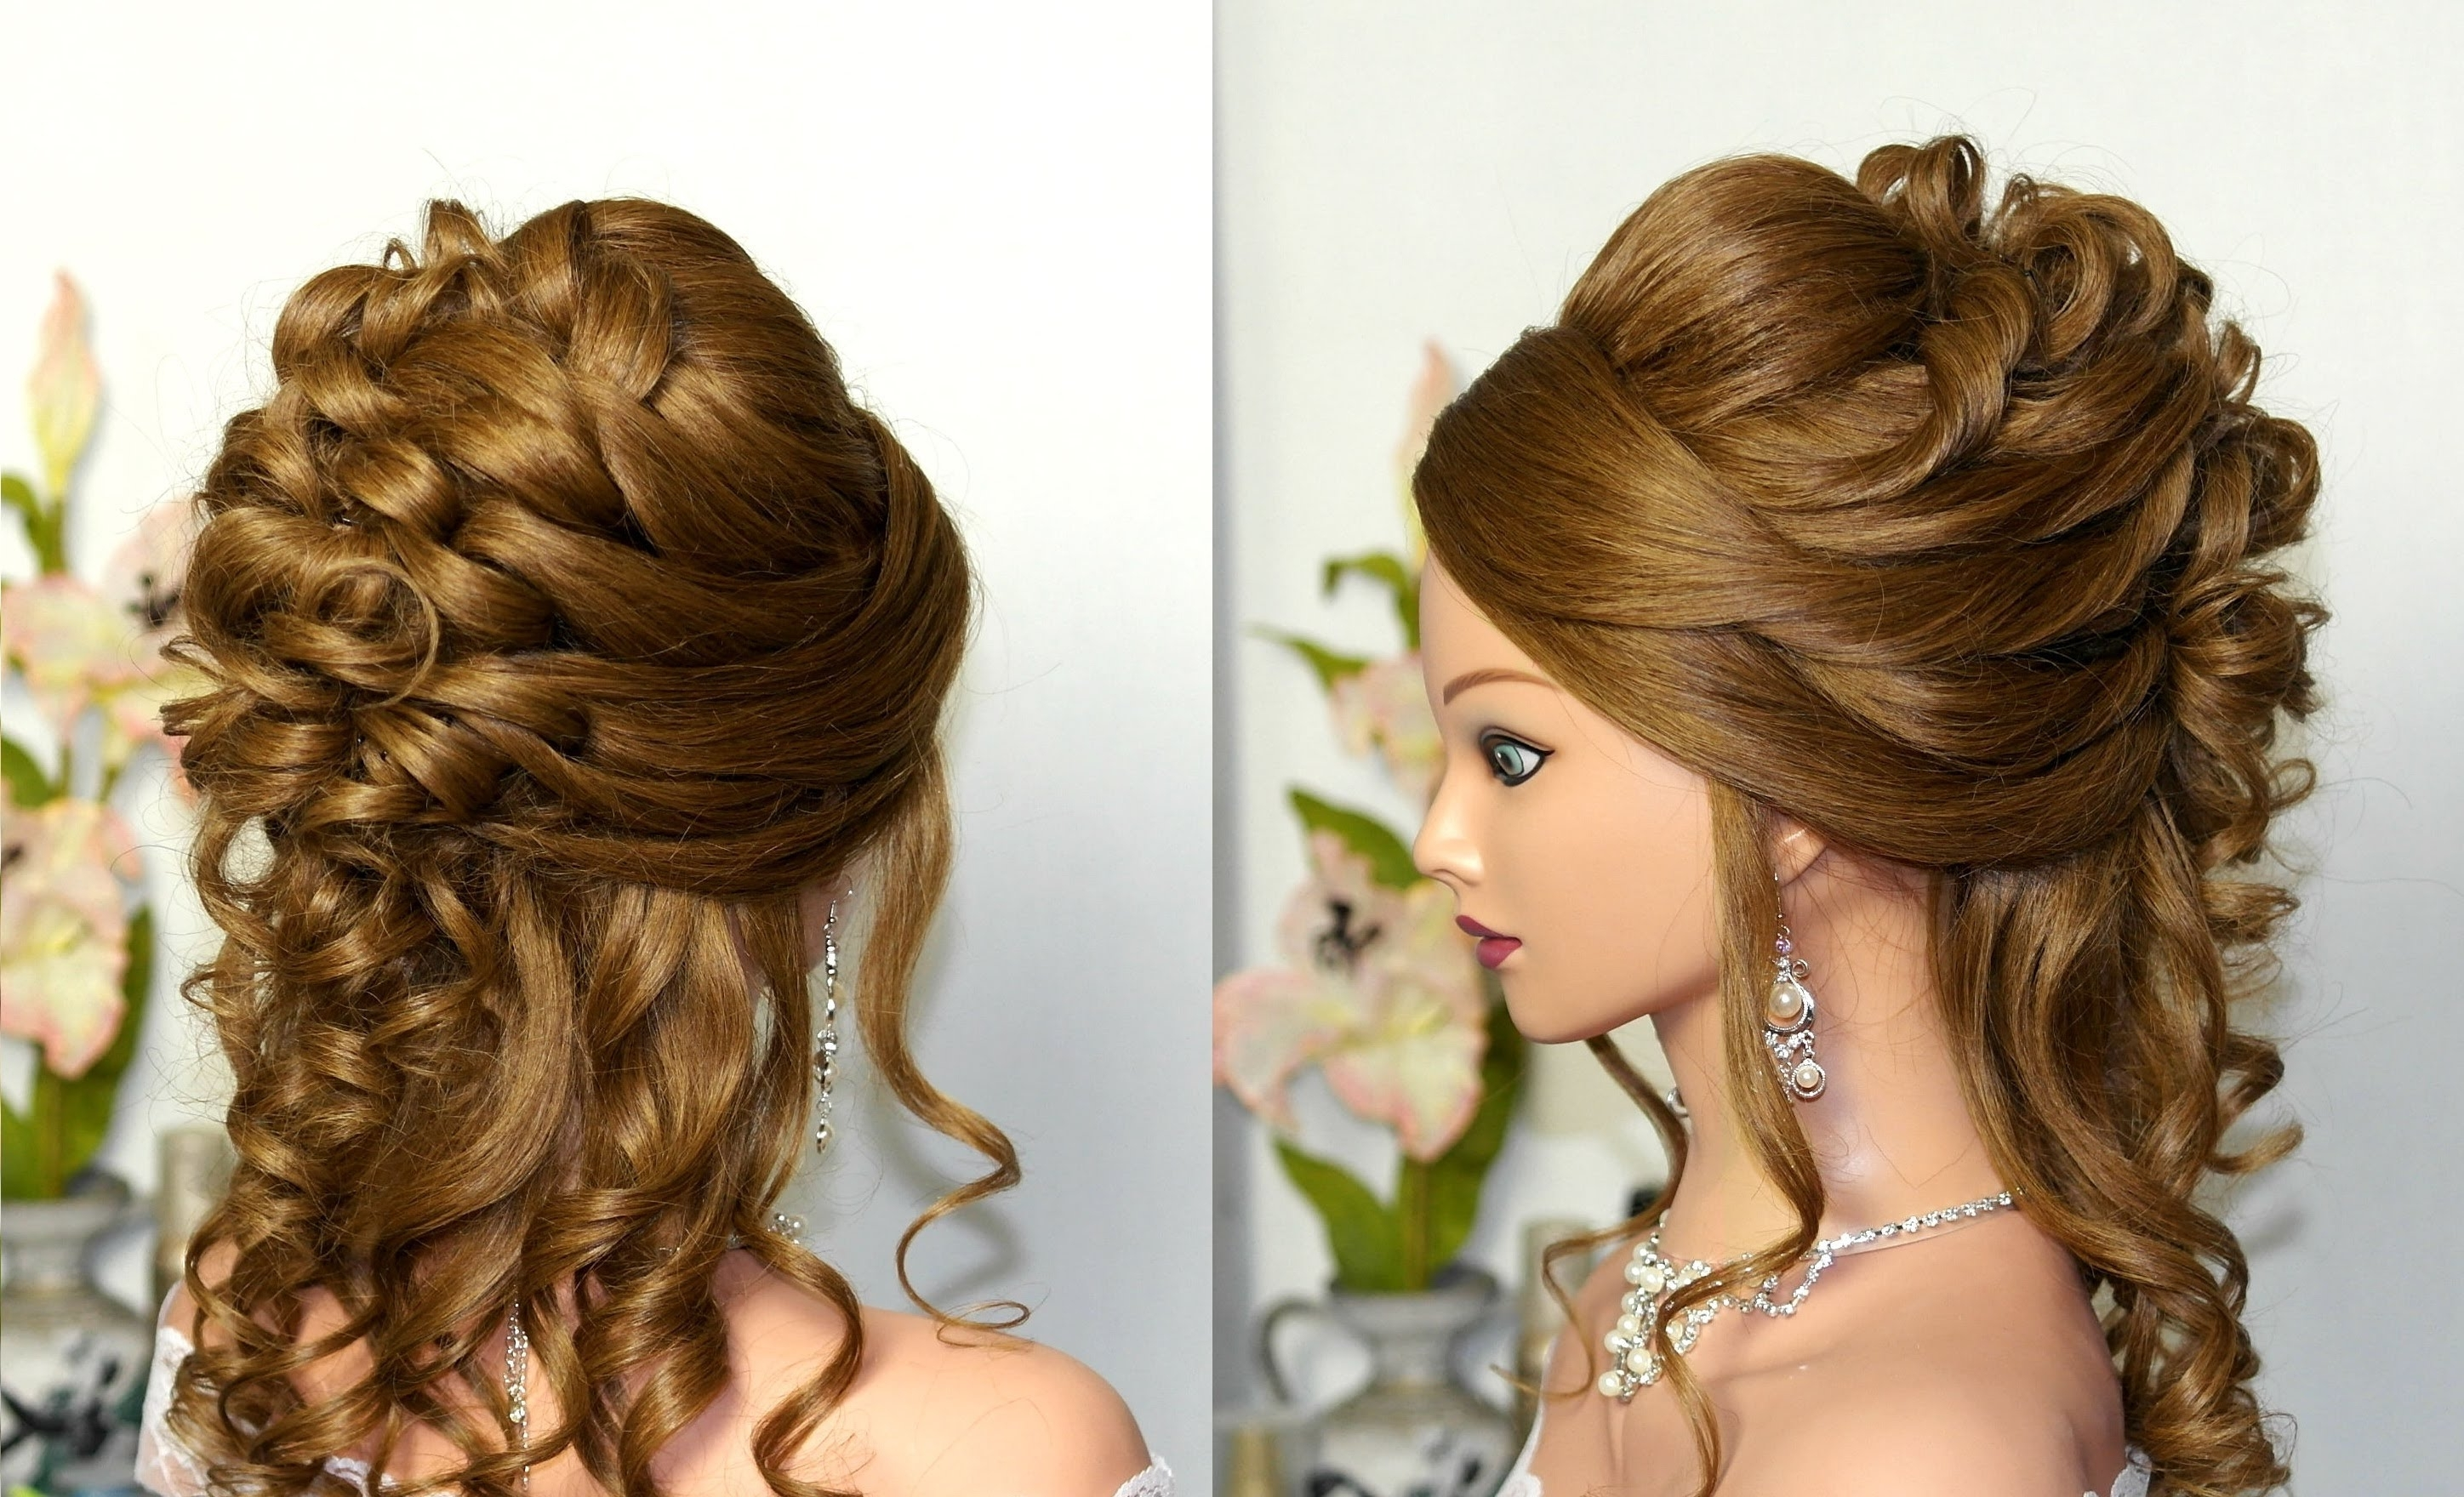 Fancy Hairstyles For Long Hairstyle Hair Tutorial Cute Prom Updo For Fancy Updo Hairstyles For Long Hair (View 5 of 15)